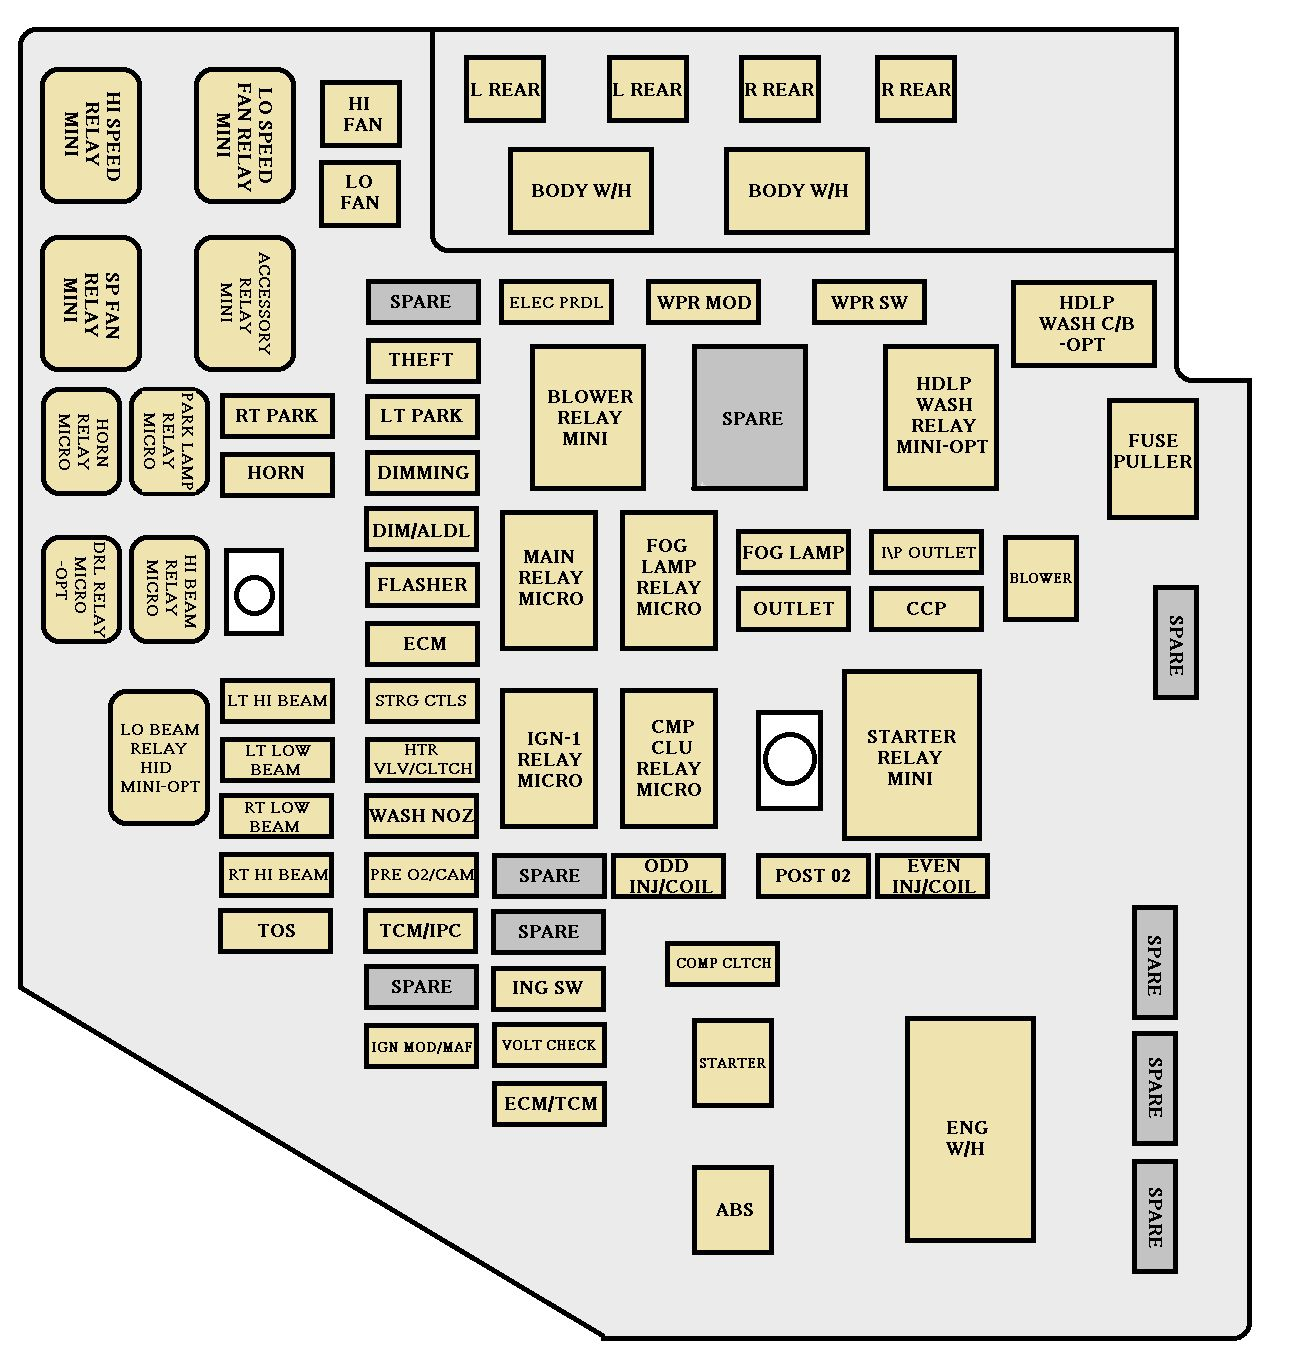 Fuse Diagram For 2005 Cadillac Sts Wiring Site 2003 Pontiac Grand Prix Box Location Cts Data Jeep Cherokee 2007